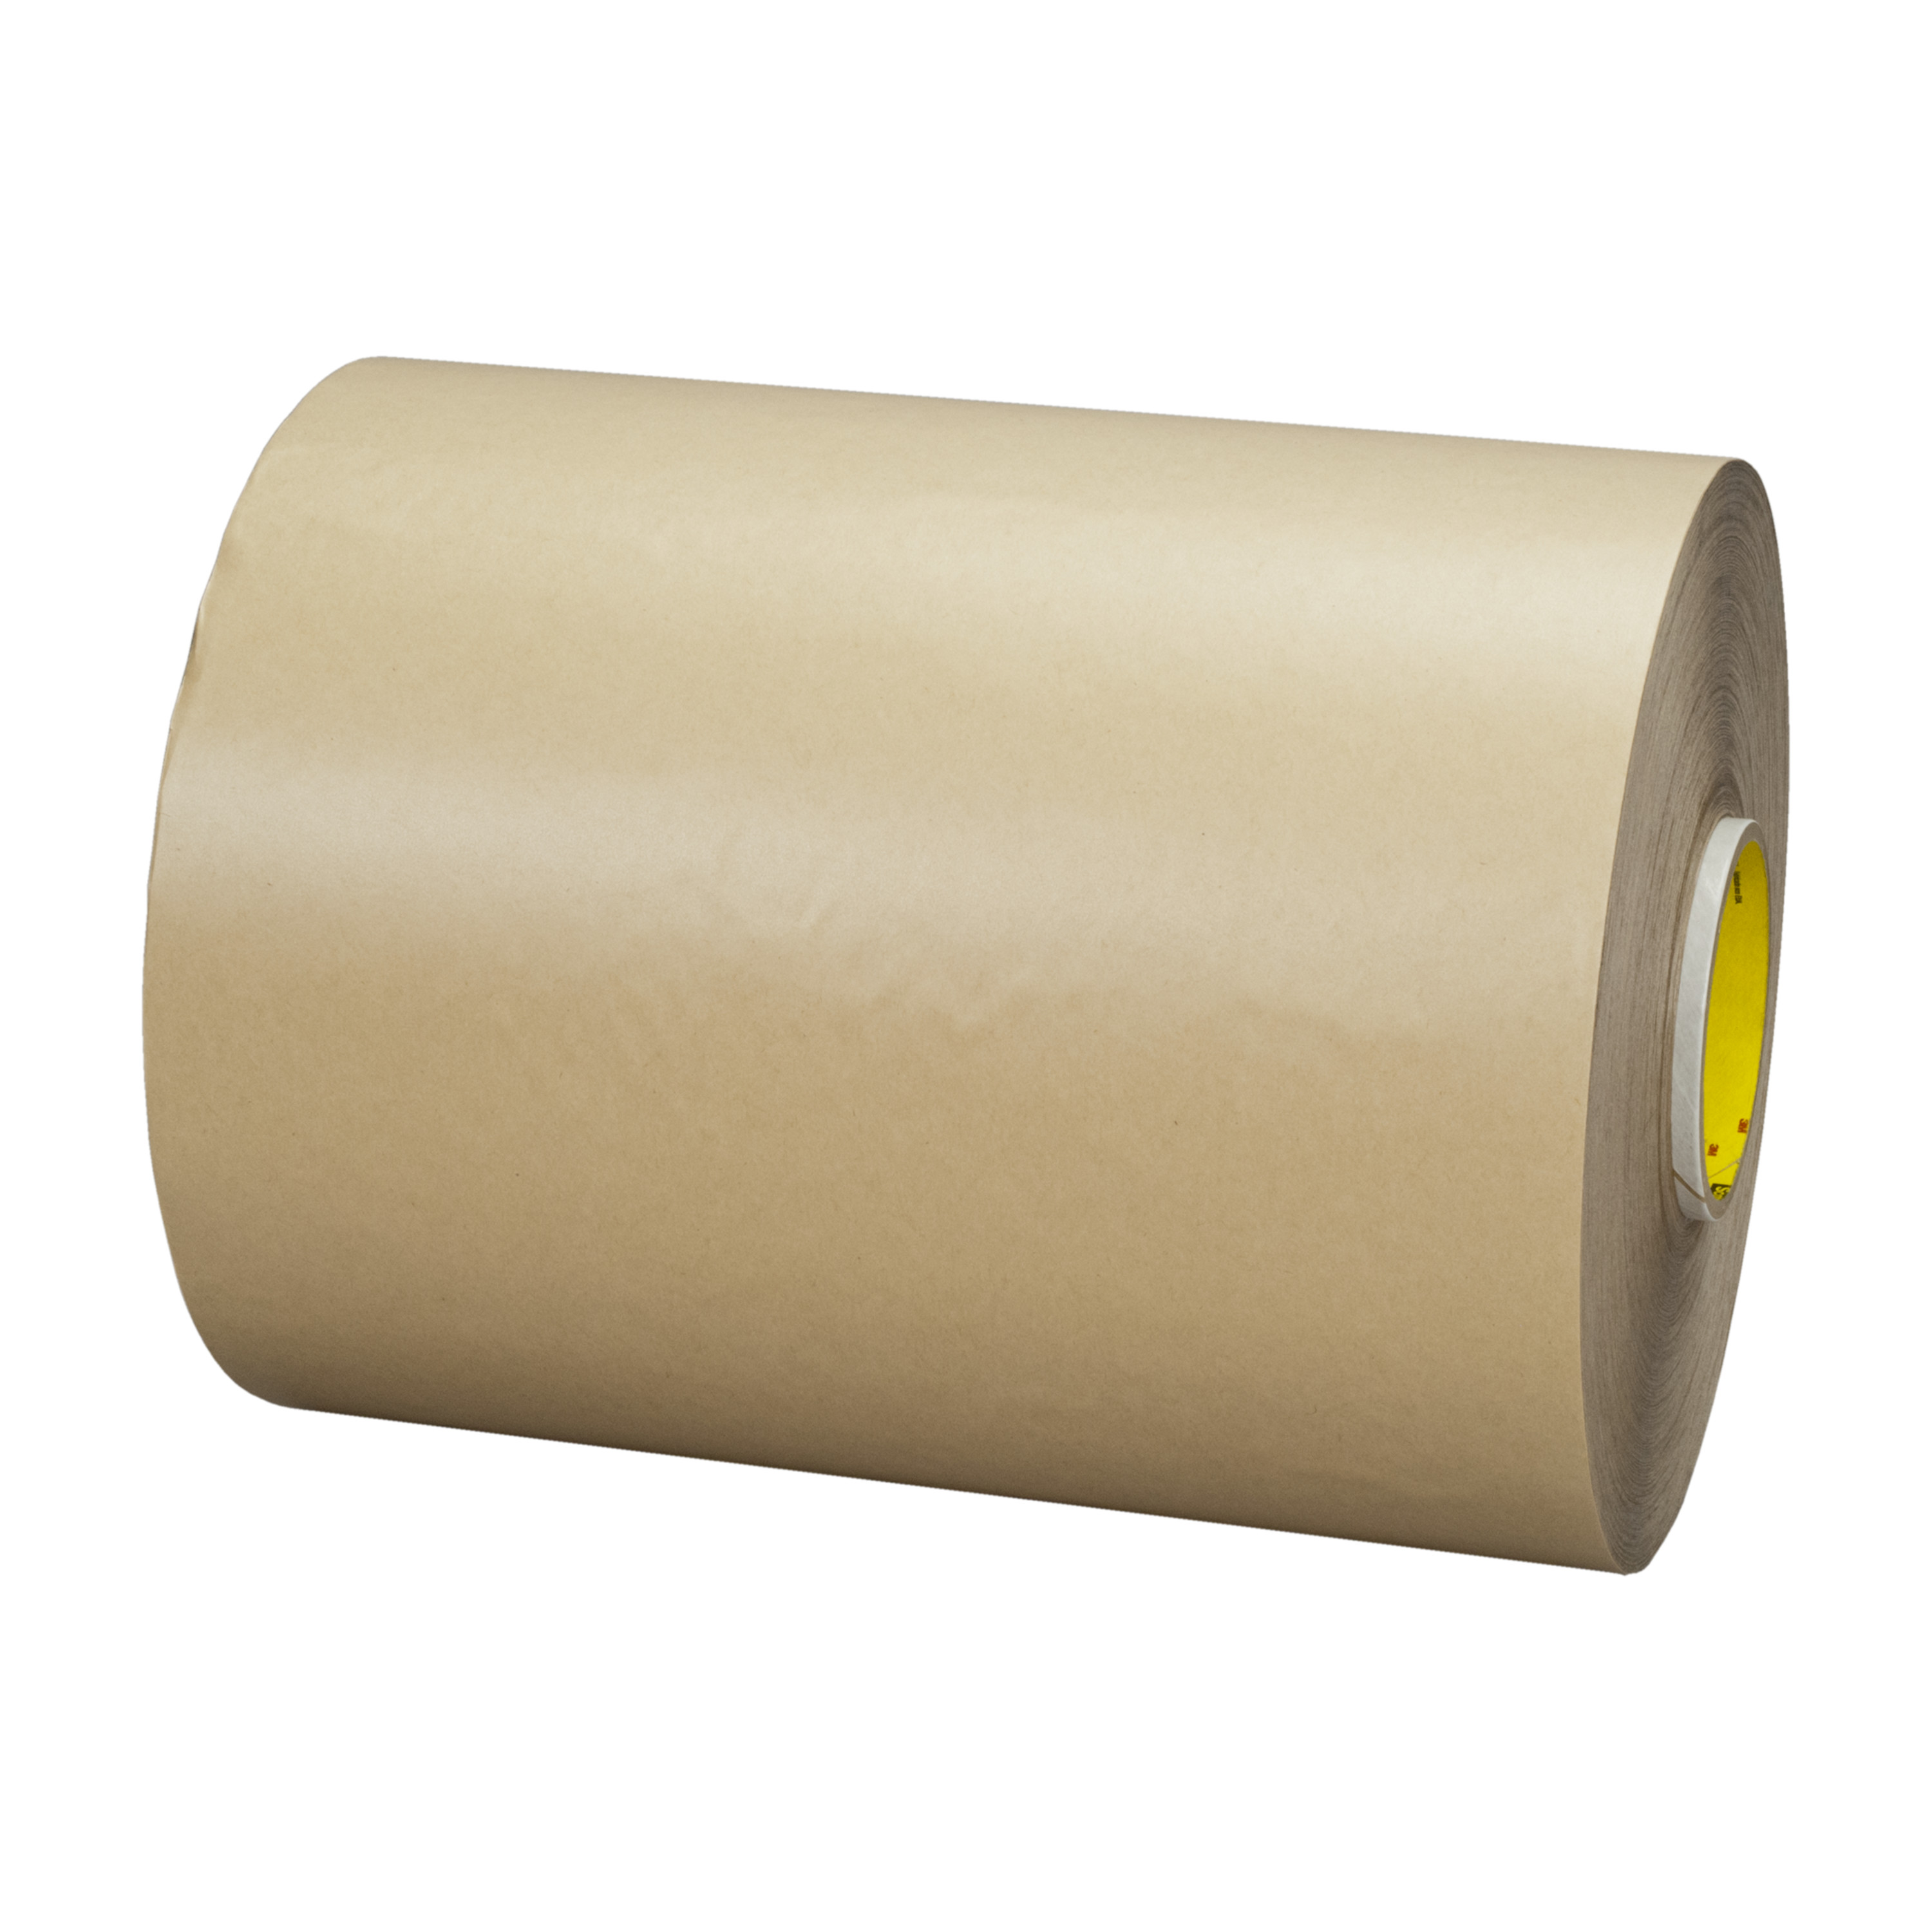 3M™ Adhesive Transfer Tape 6035PC, Clear, 1 in x 60 yd, 5 mil, 9 rolls per case